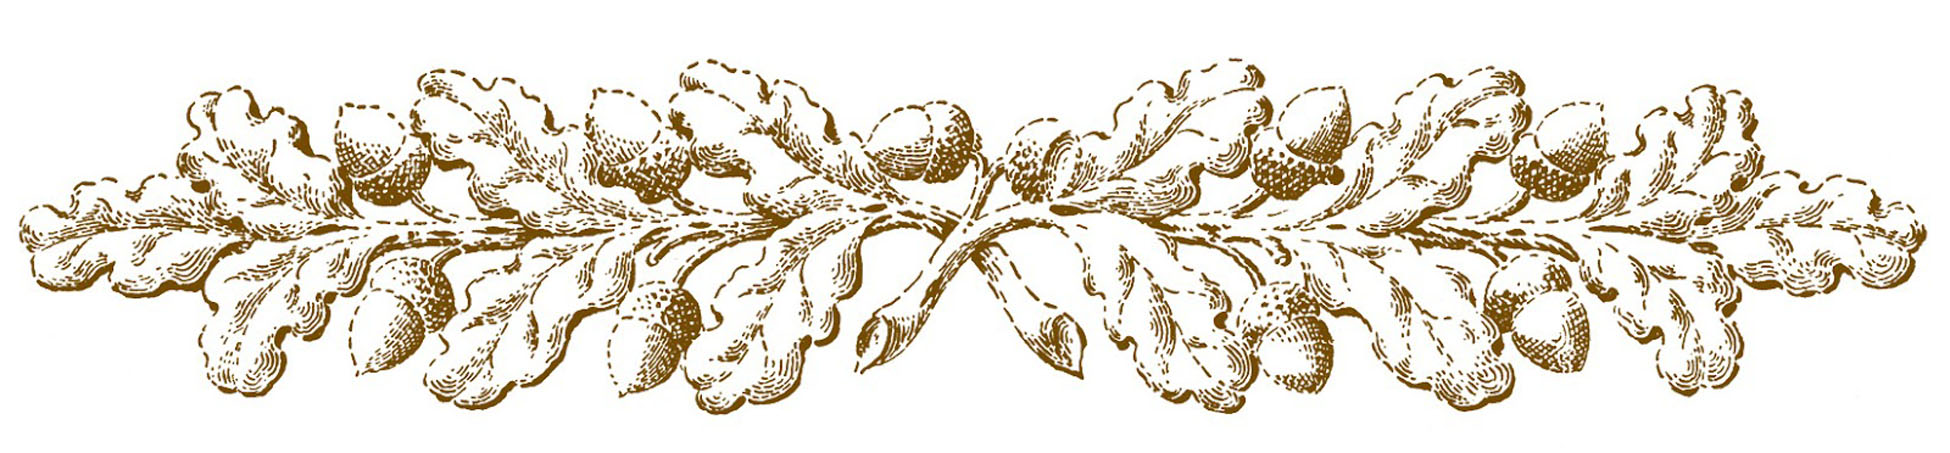 16 oak leaf images with acorns the graphics fairy 16 oak leaf images with acorns the